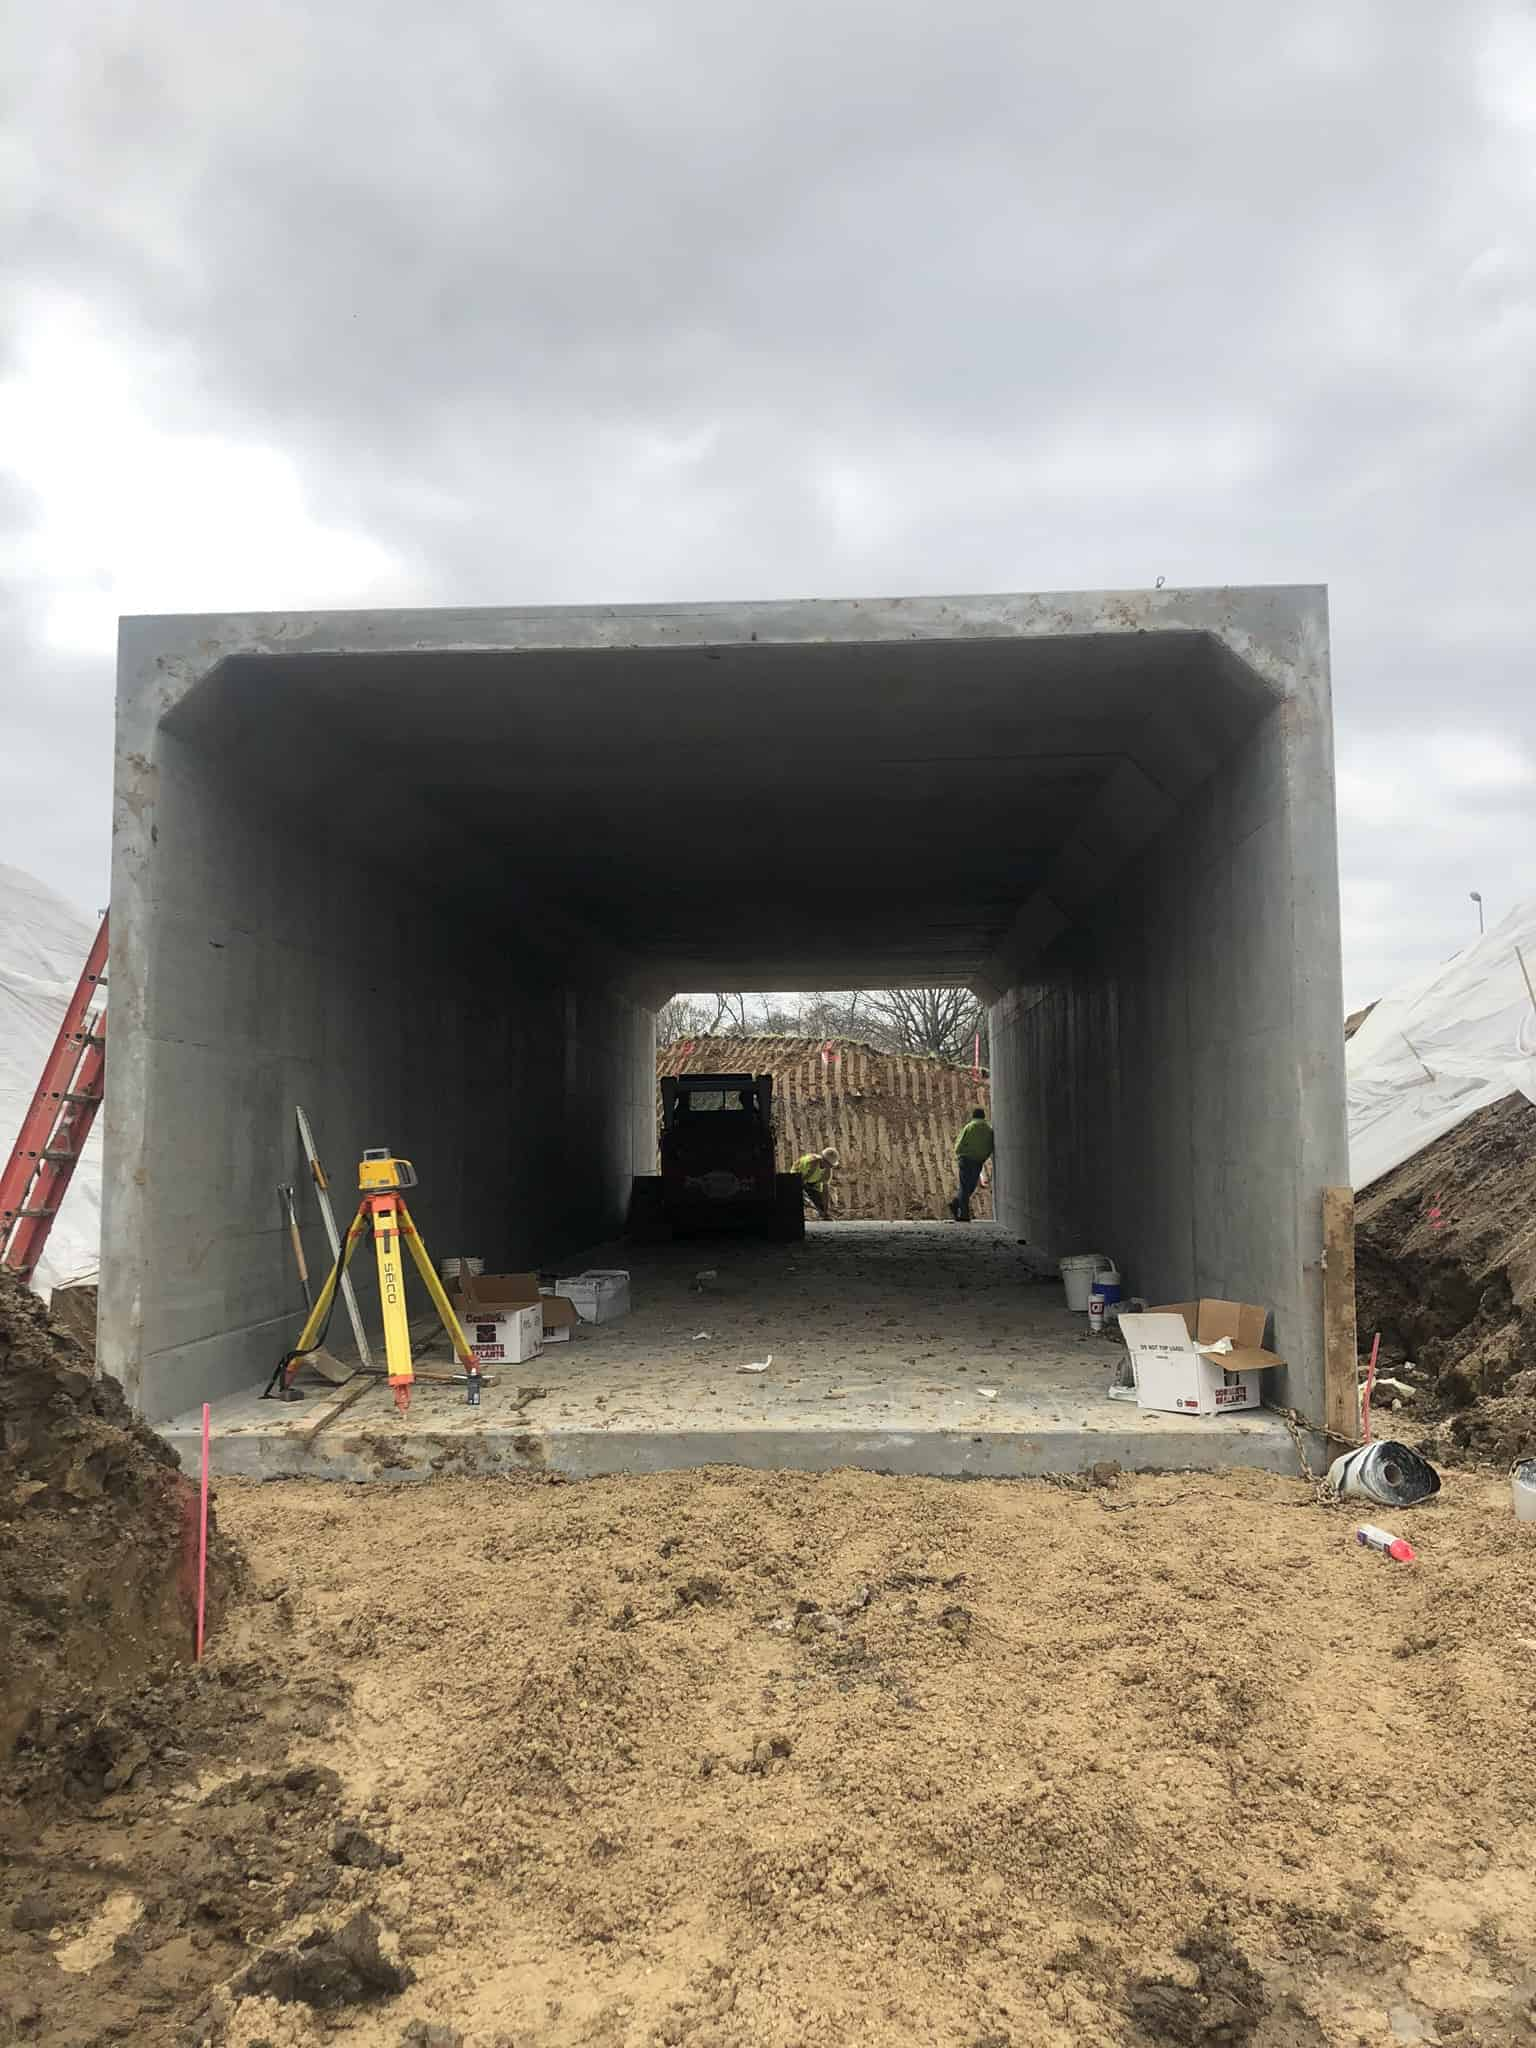 Great Rivers Greenway Pedestrian Underpass by Wieser Concrete